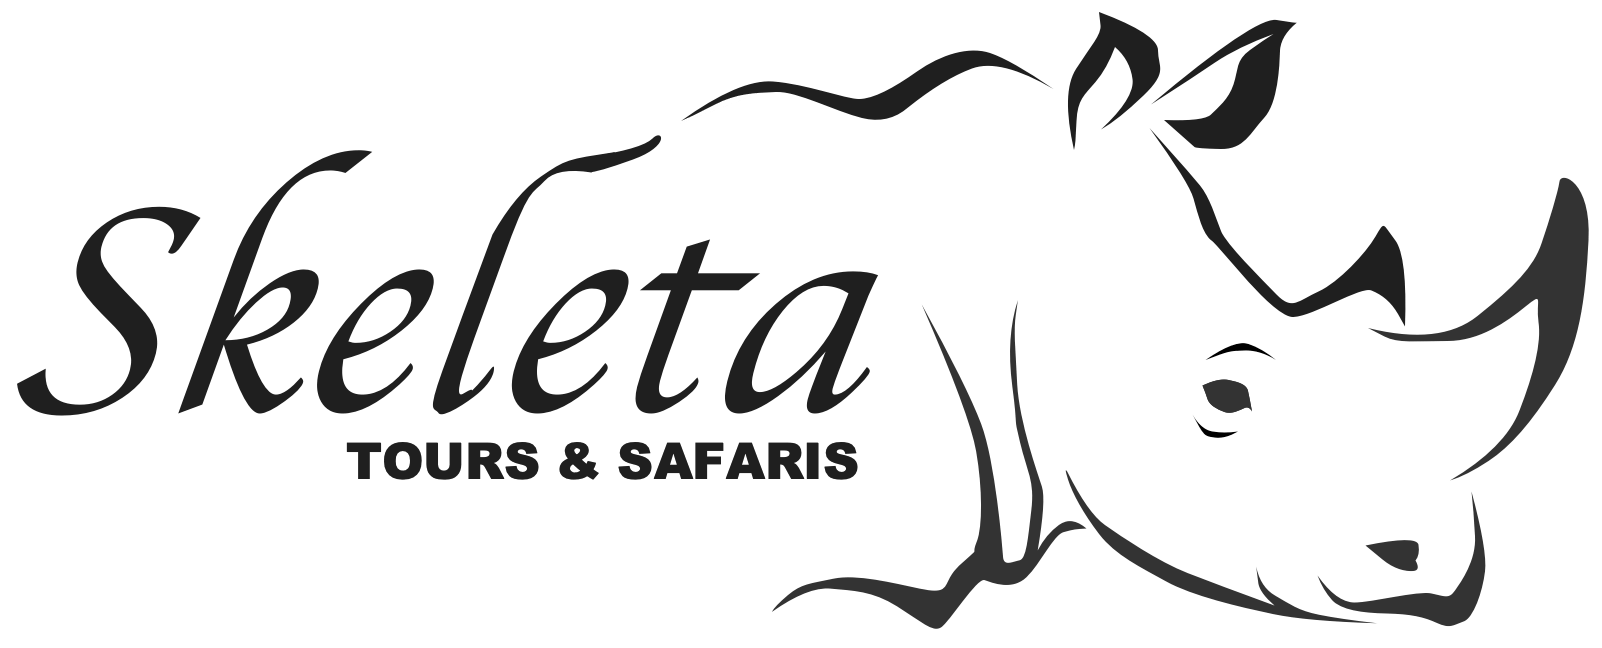 Skeleta Tours & Safaris Logo